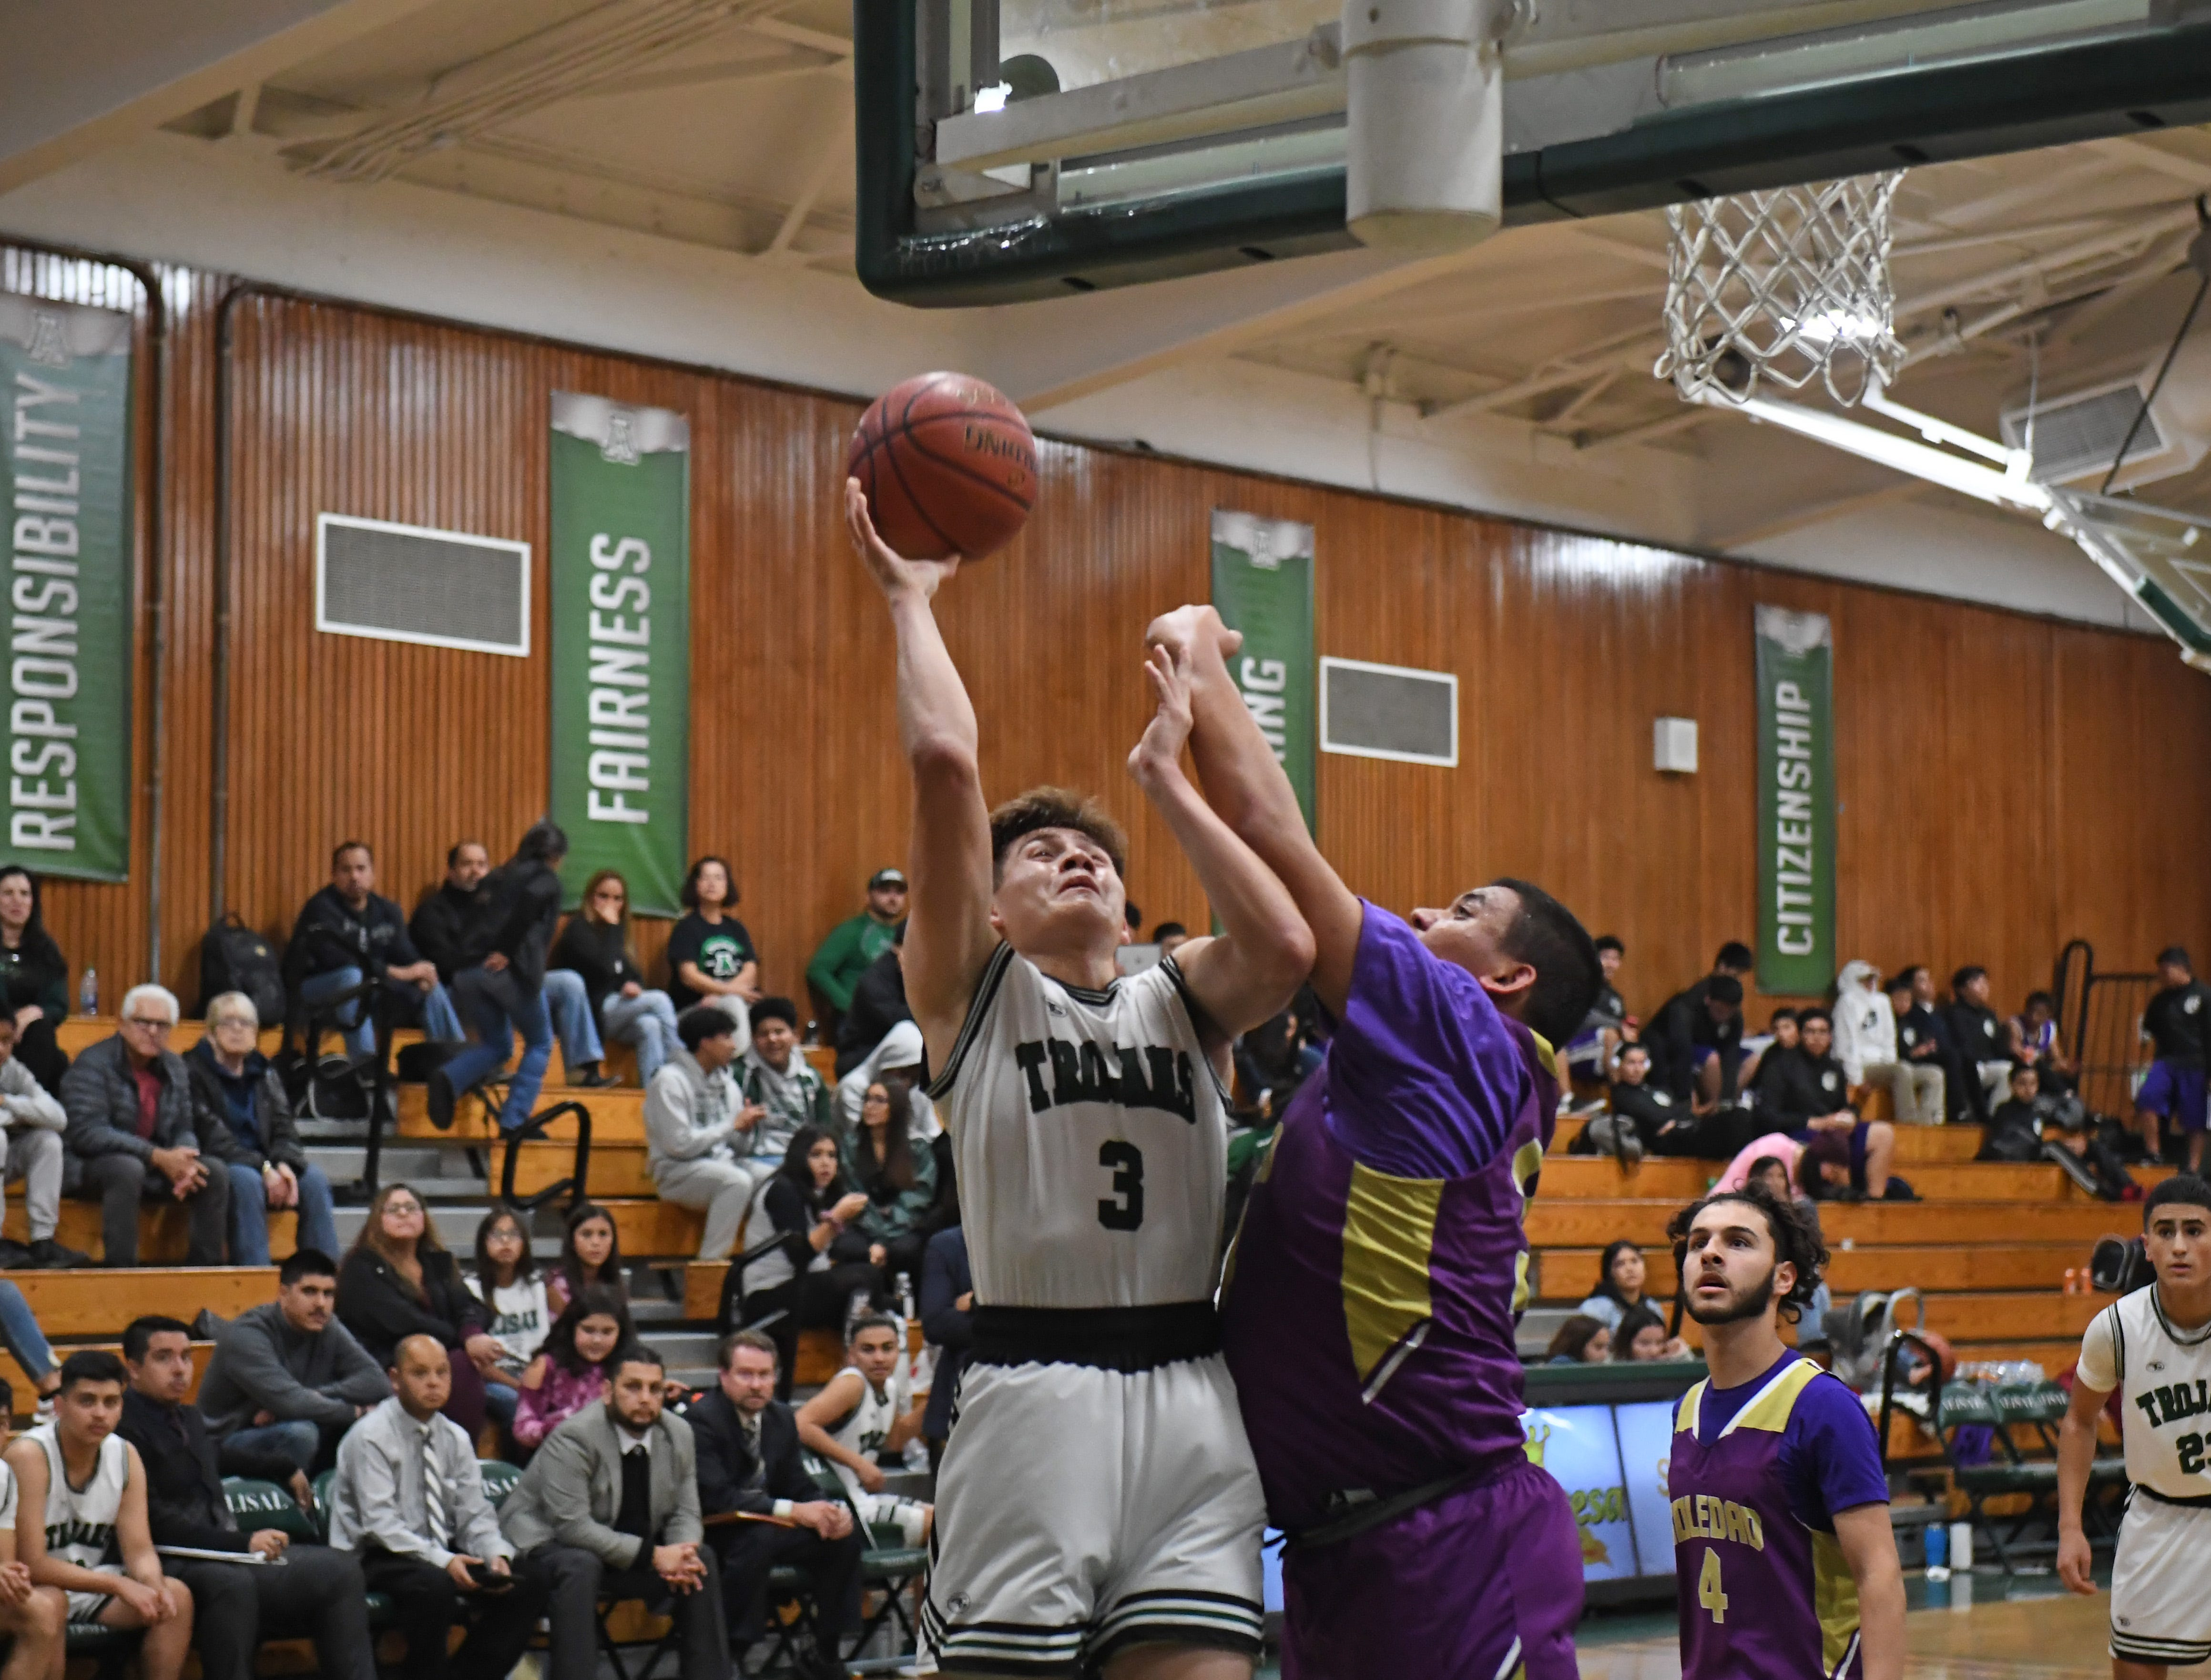 Alisal forward Ronaldo Enriquez (3) puts up a shot while taking contact from the defense.